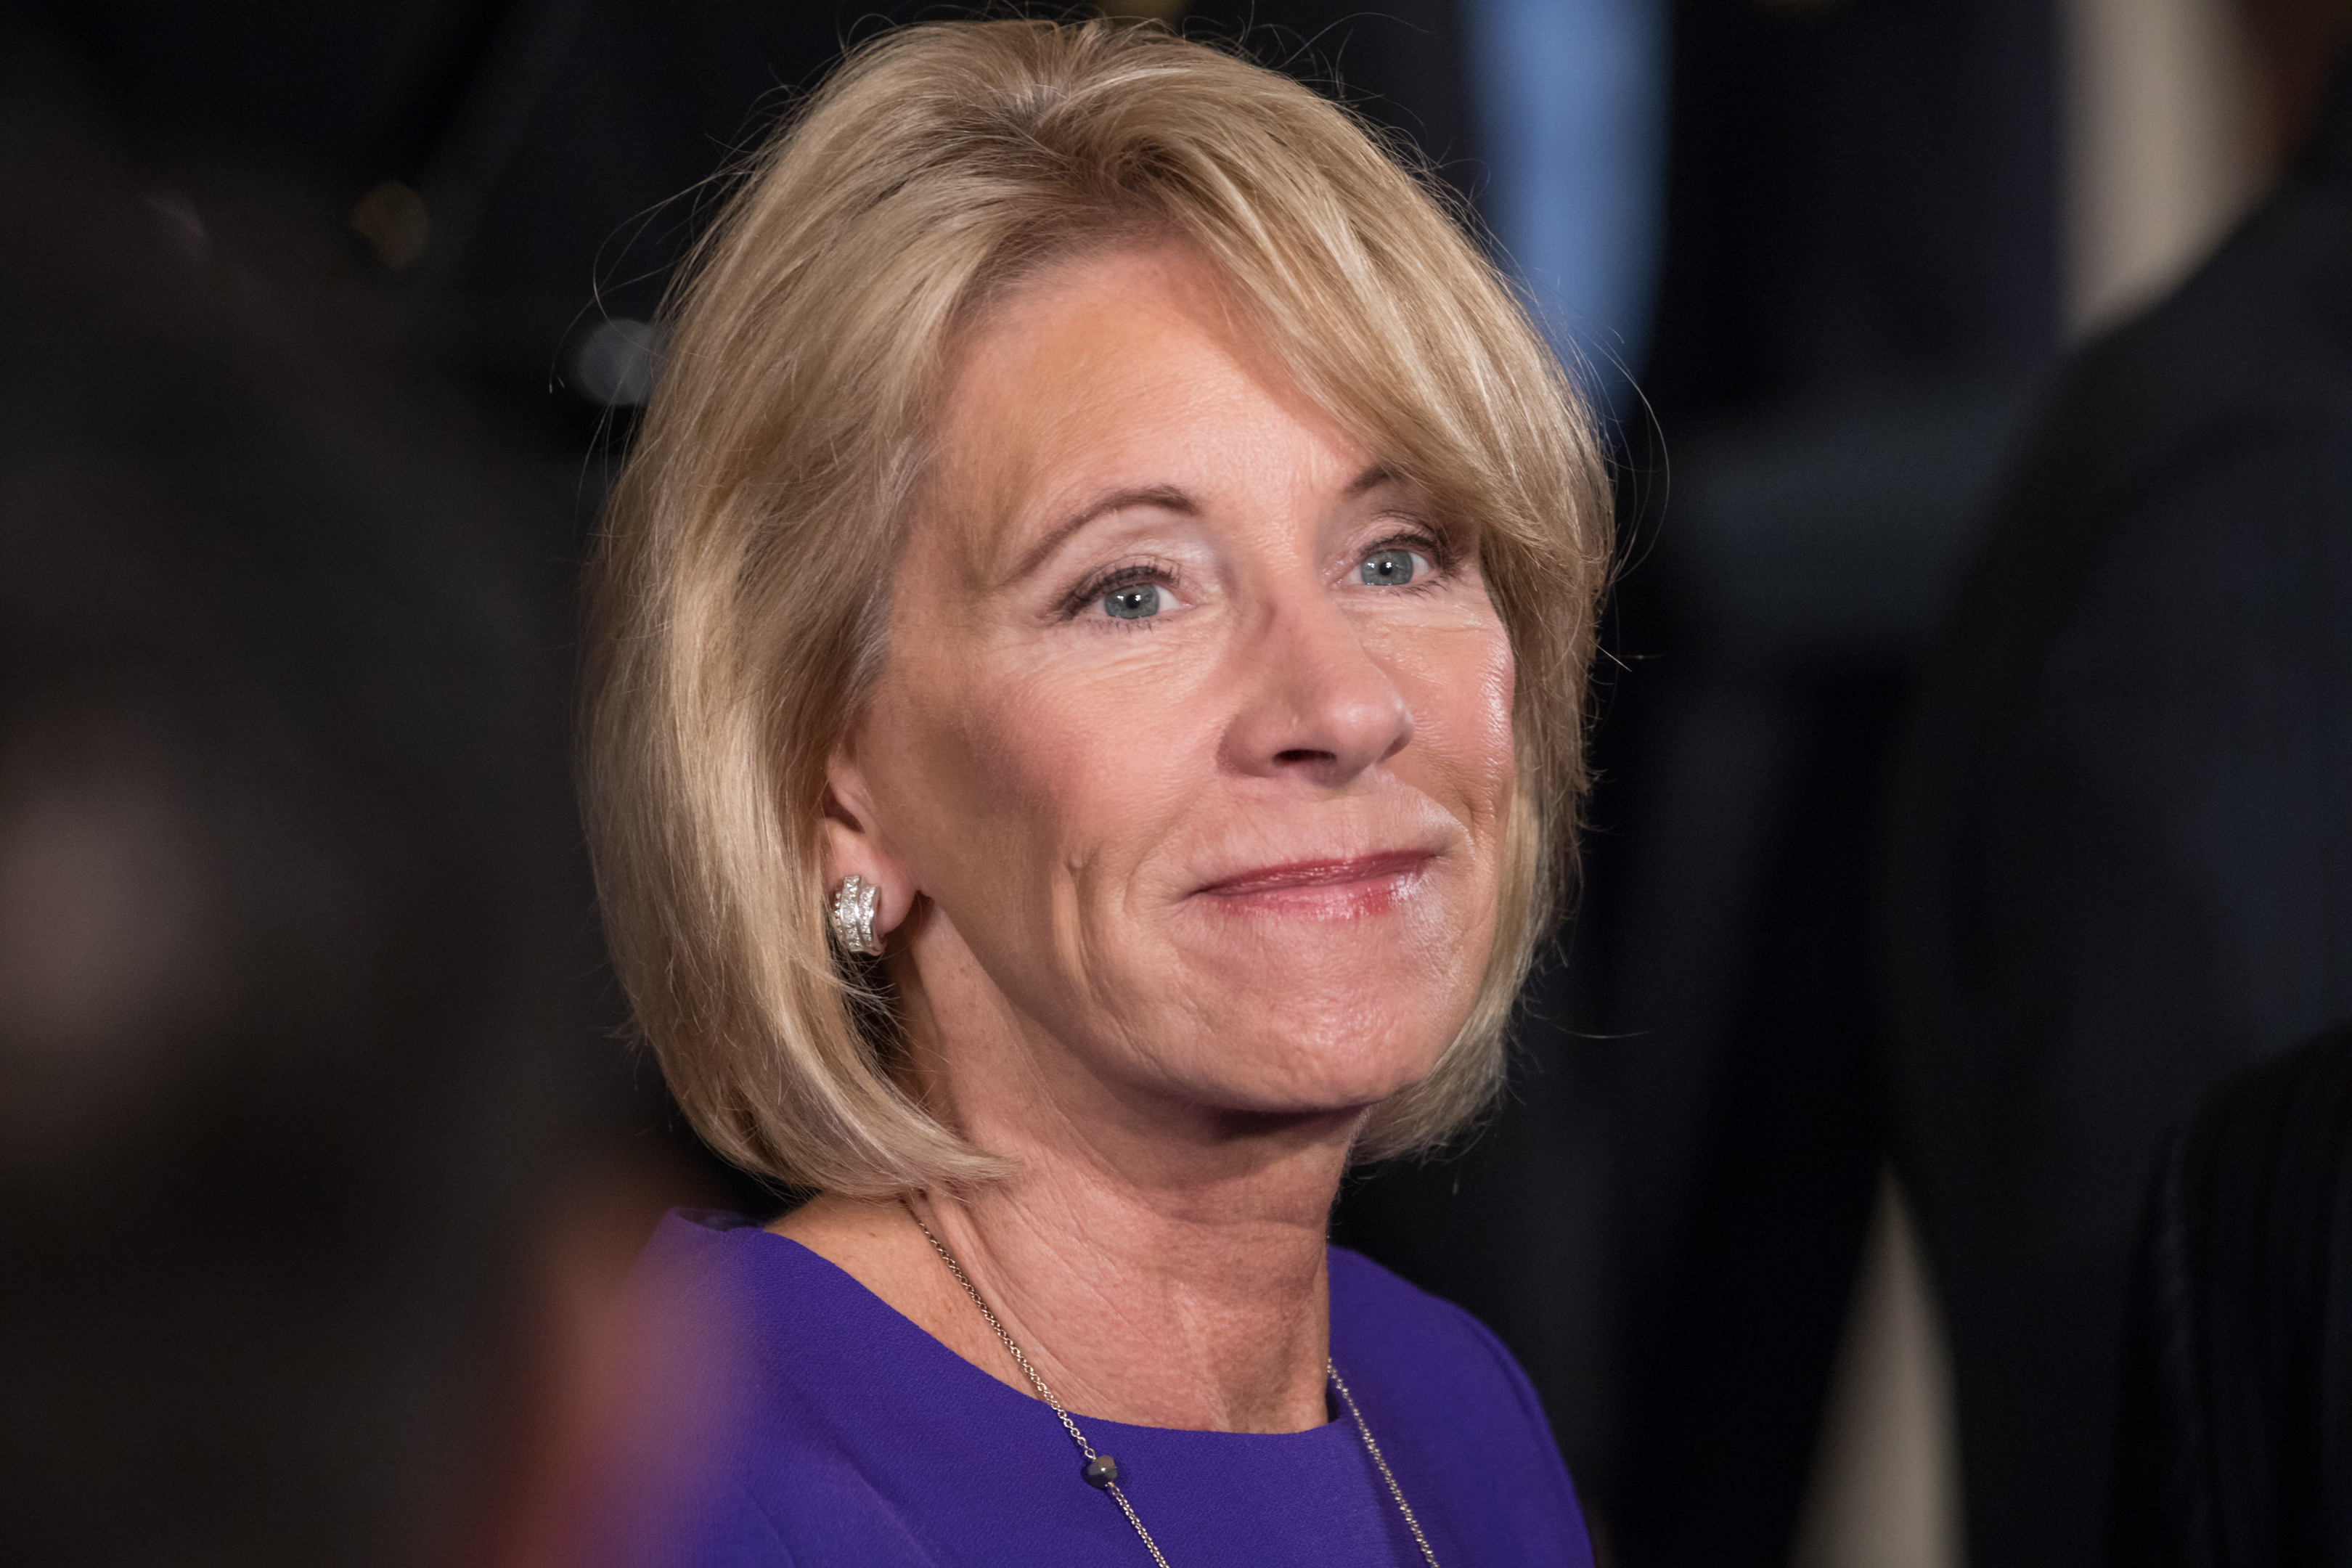 Betsy DeVos, U.S. secretary of education, was in attendance at President Donald Trump's event on combatting drug demand and the opioid crisis, in the East Room of the White House, on Oct. 26th, 2017.